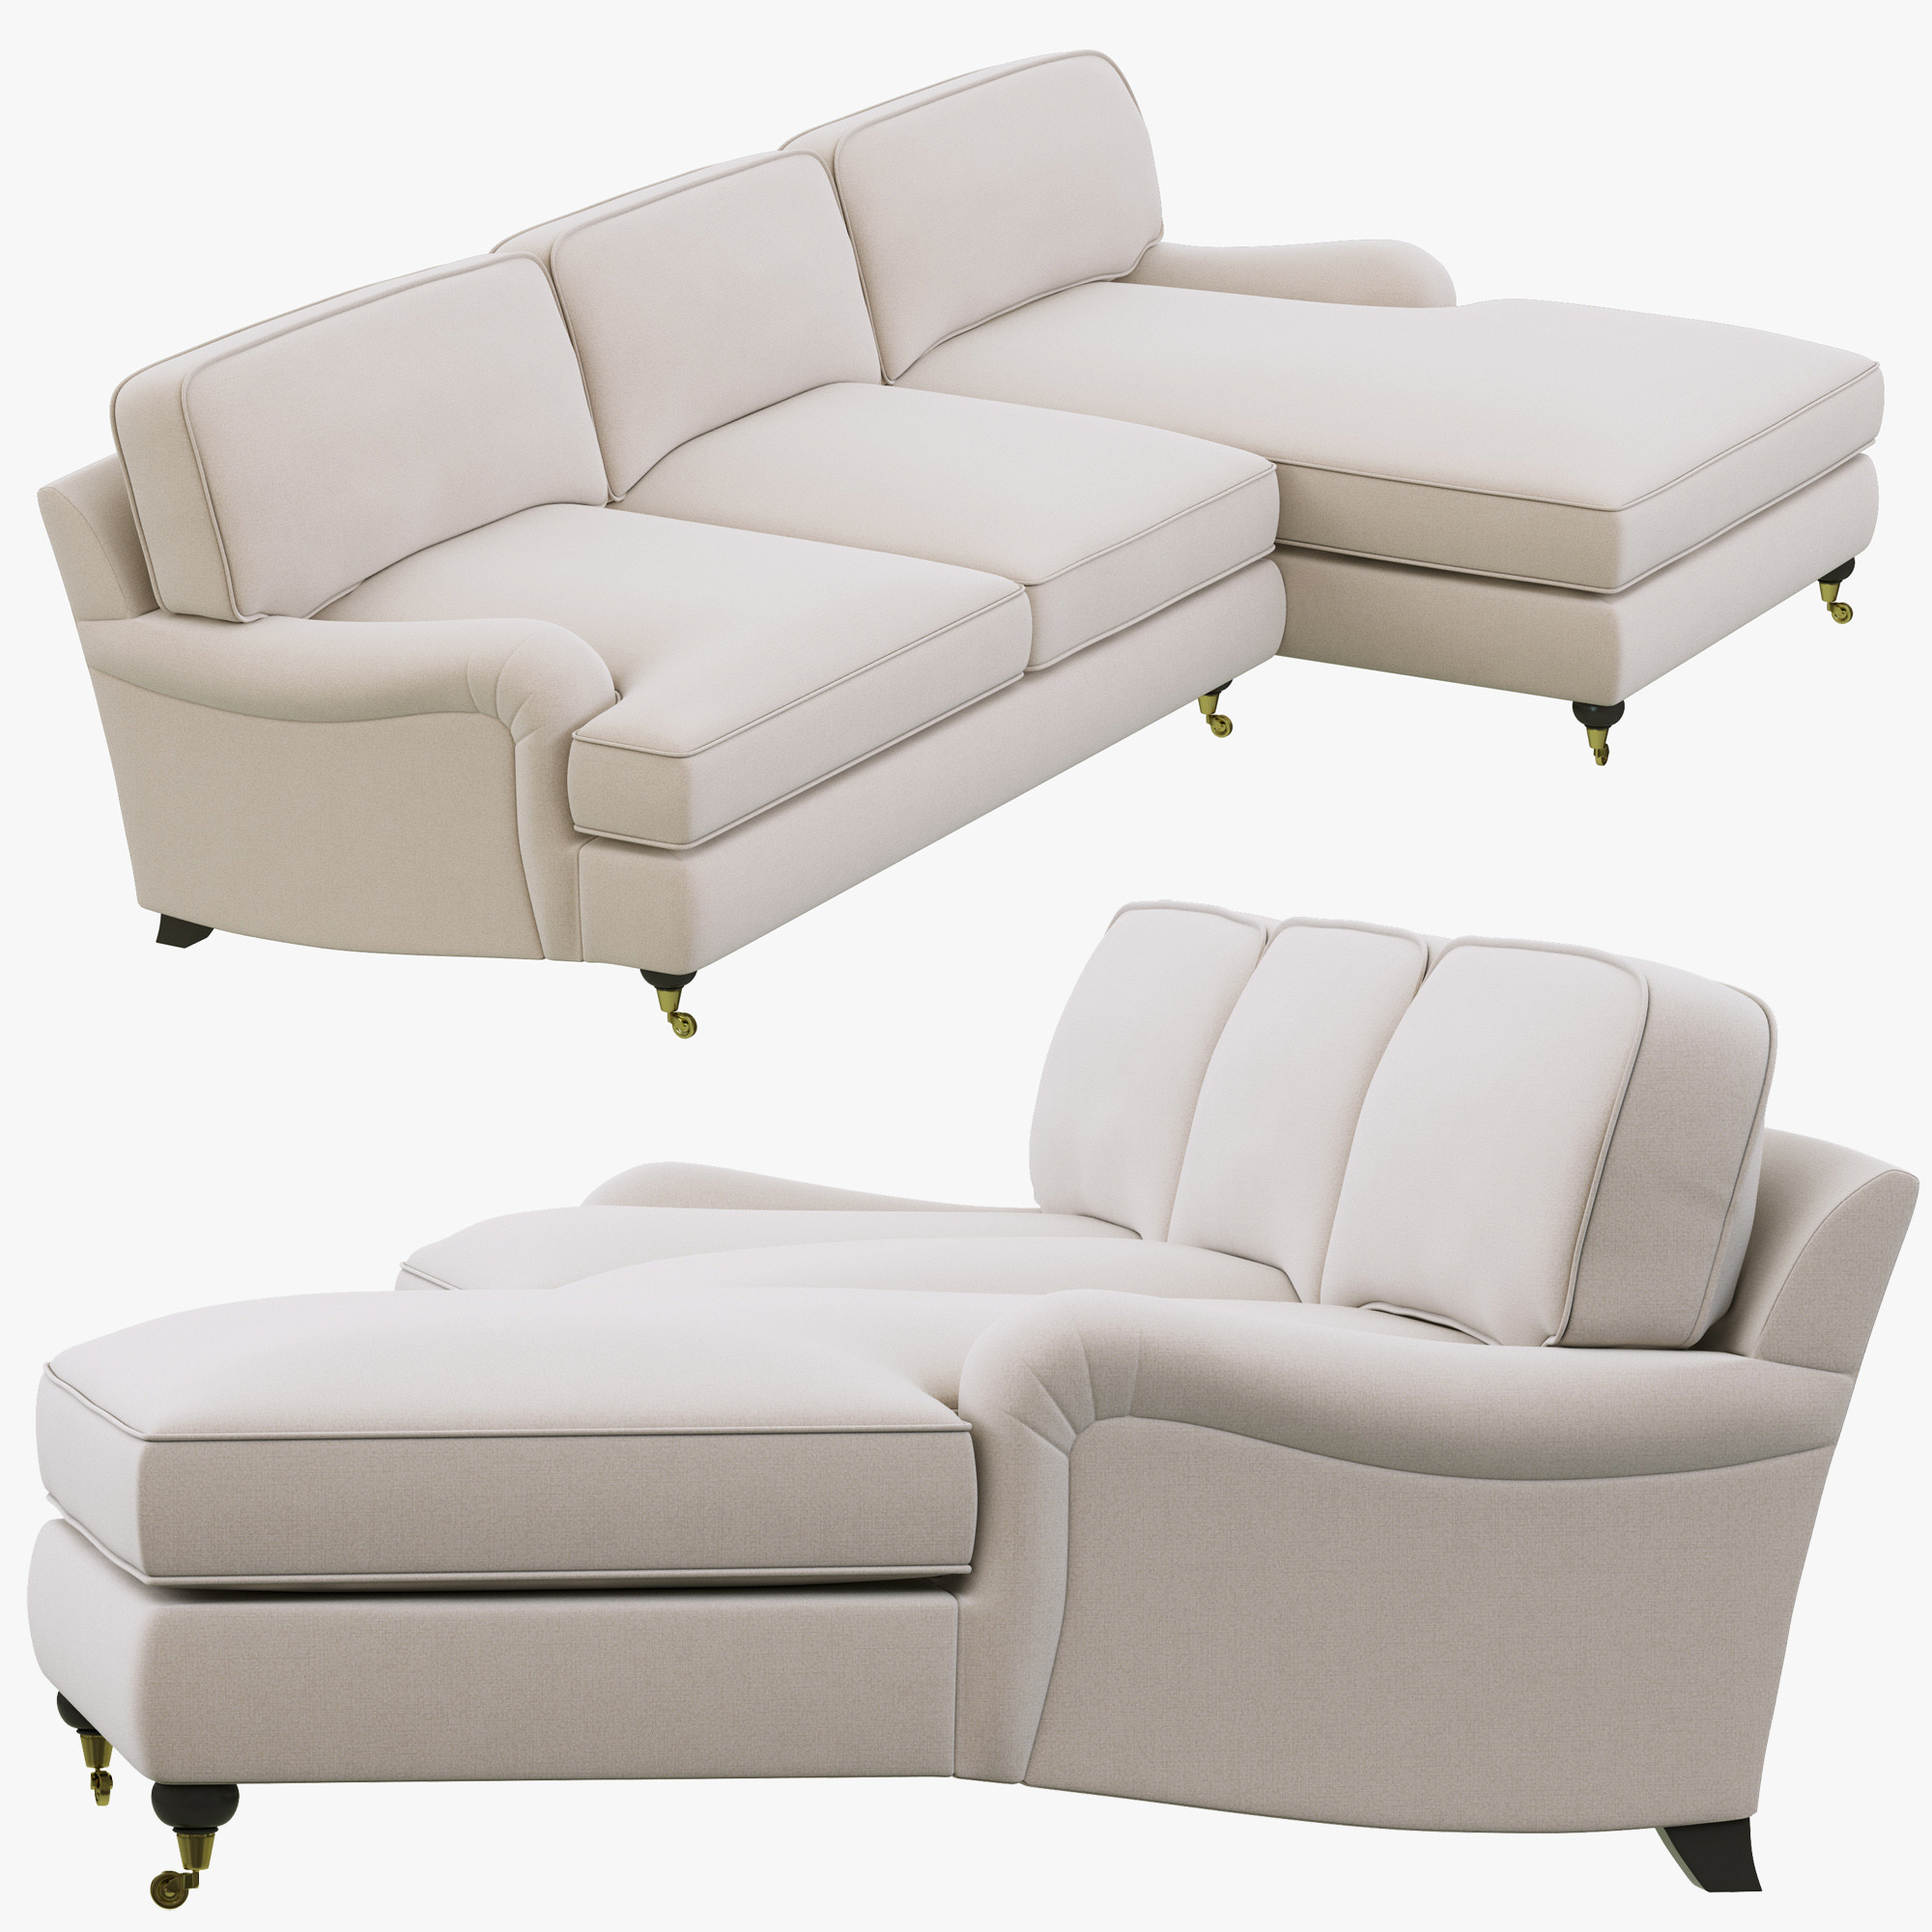 3d restoration hardware english roll model for Angled chaise lounge sofa